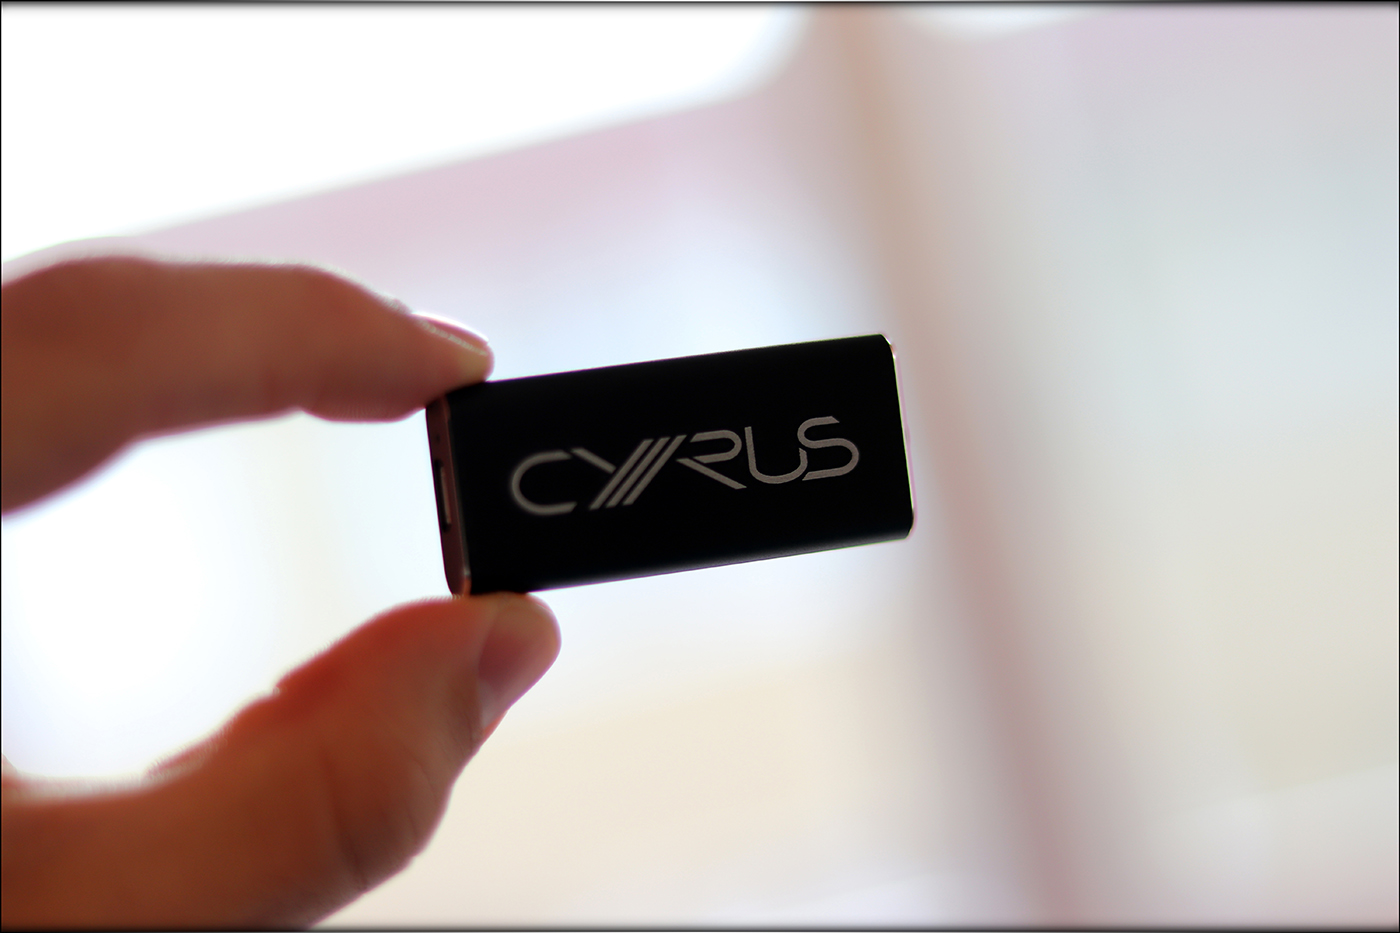 Cyrus-Sound-Key-Soundkey-DAC-AMP-Portable-Smartphone-Review-Audiophile-Heaven-14.jpg